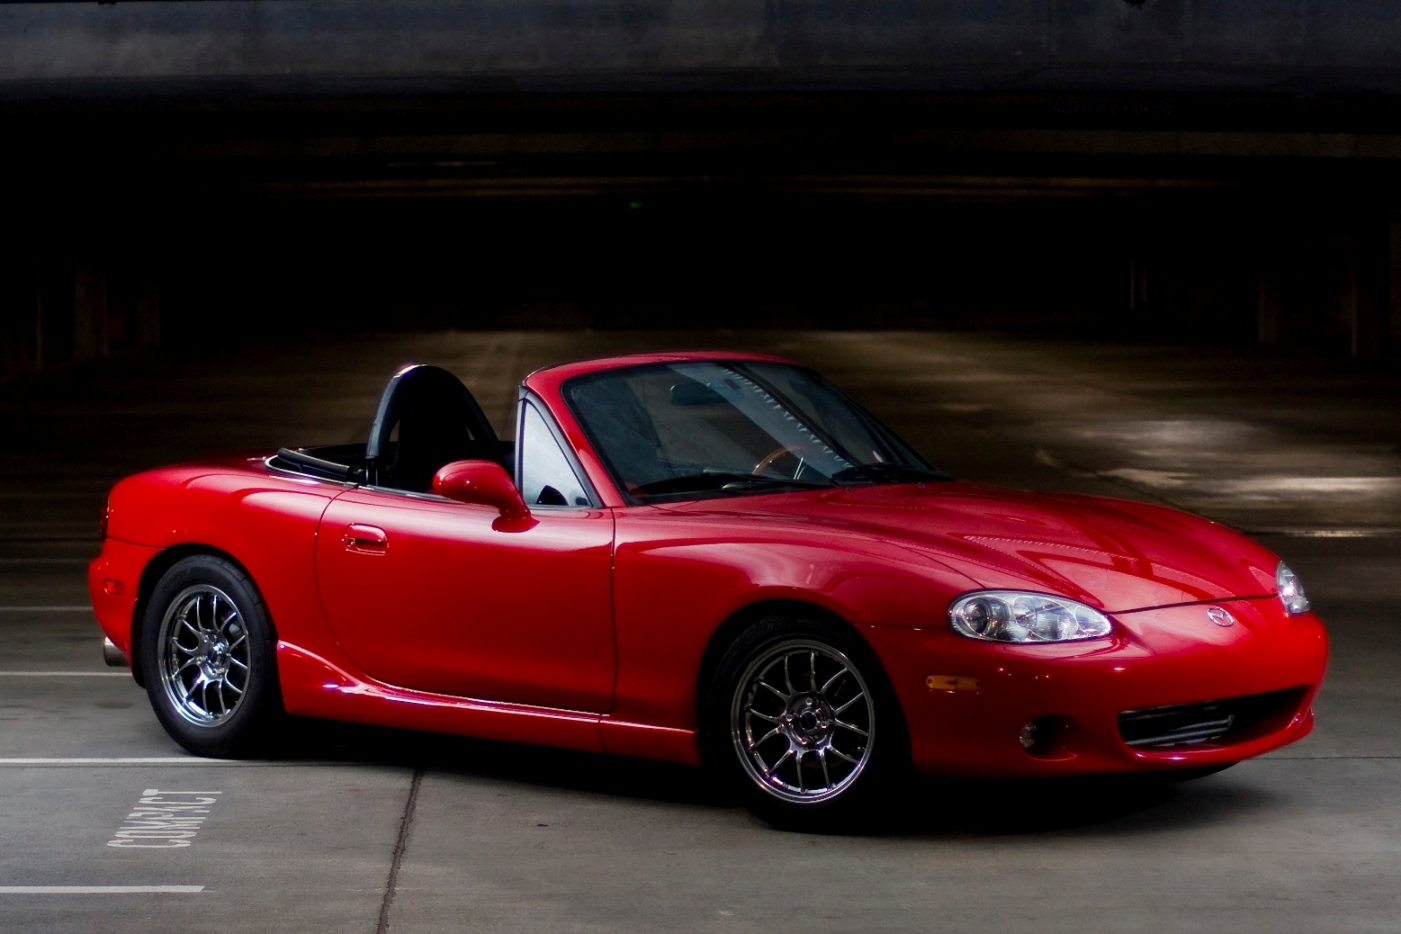 2001 Mazda Miata MX5 Turbo